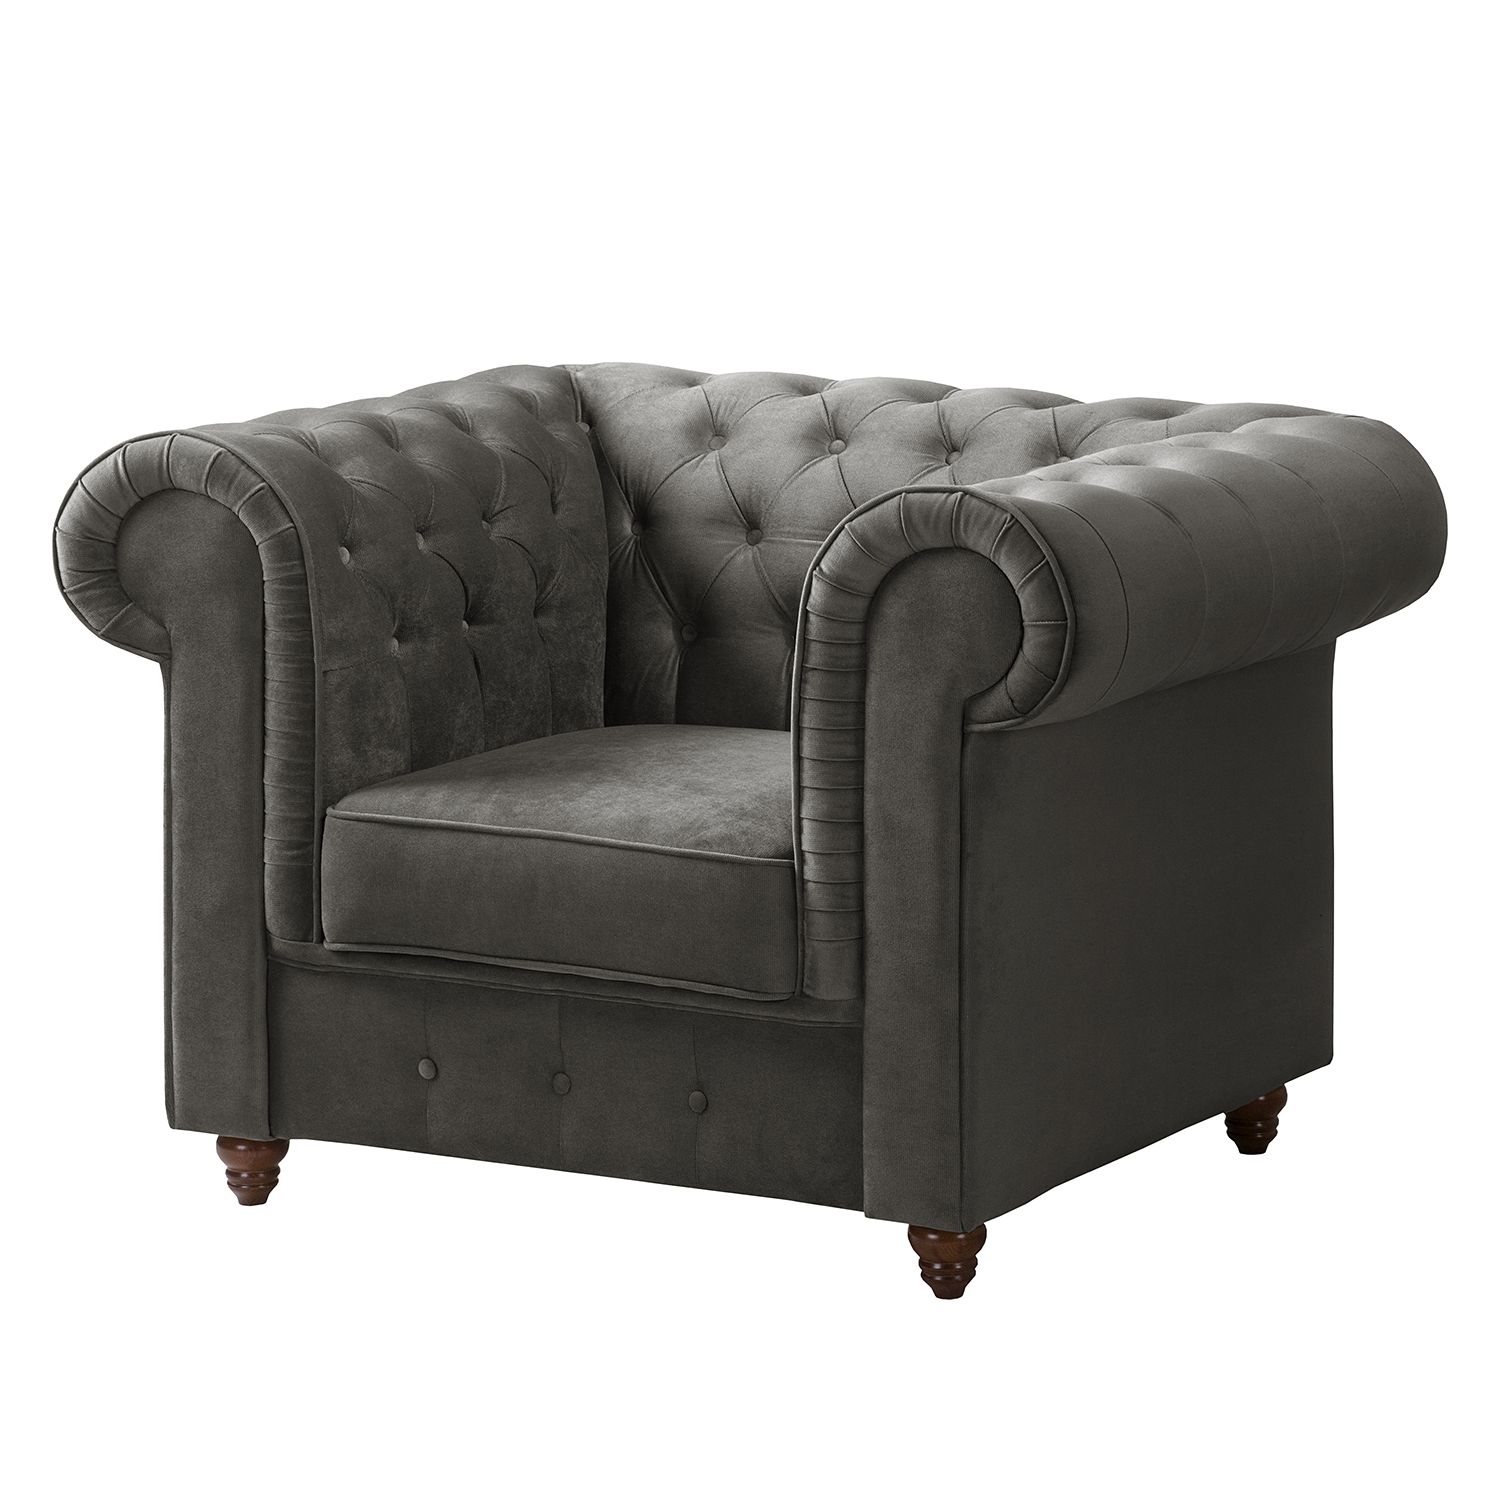 fauteuil chesterfield pintano velours gris ars manufacti seea dacosta. Black Bedroom Furniture Sets. Home Design Ideas